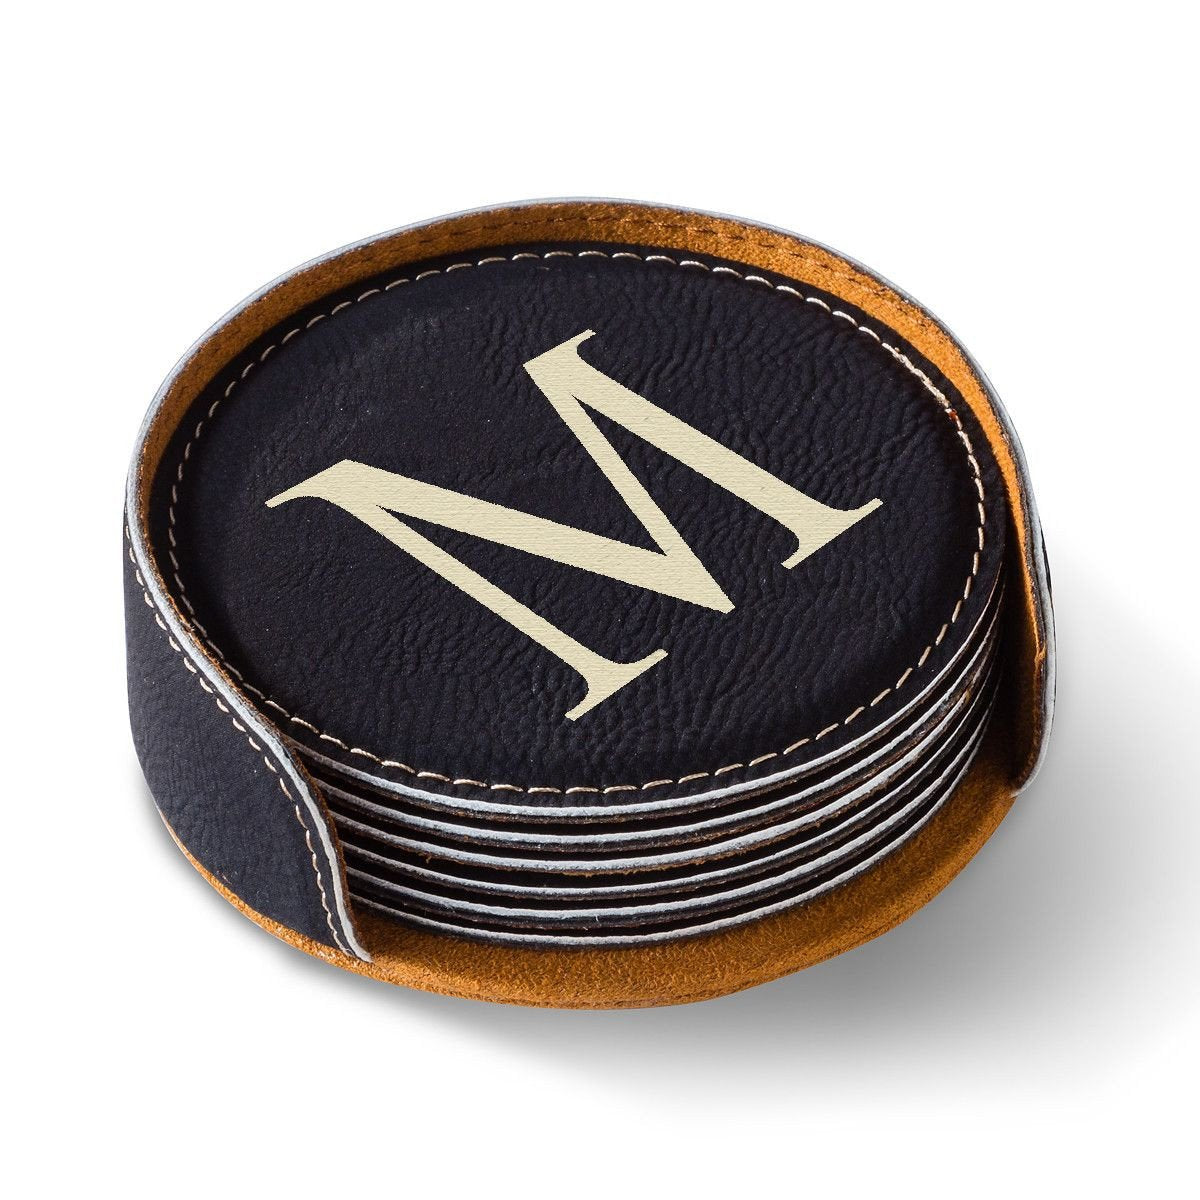 Personalized-Round-Leatherette-Coaster-Set-Available-in-Black-Dark-Brown-Light-Brown-and-Rawhide